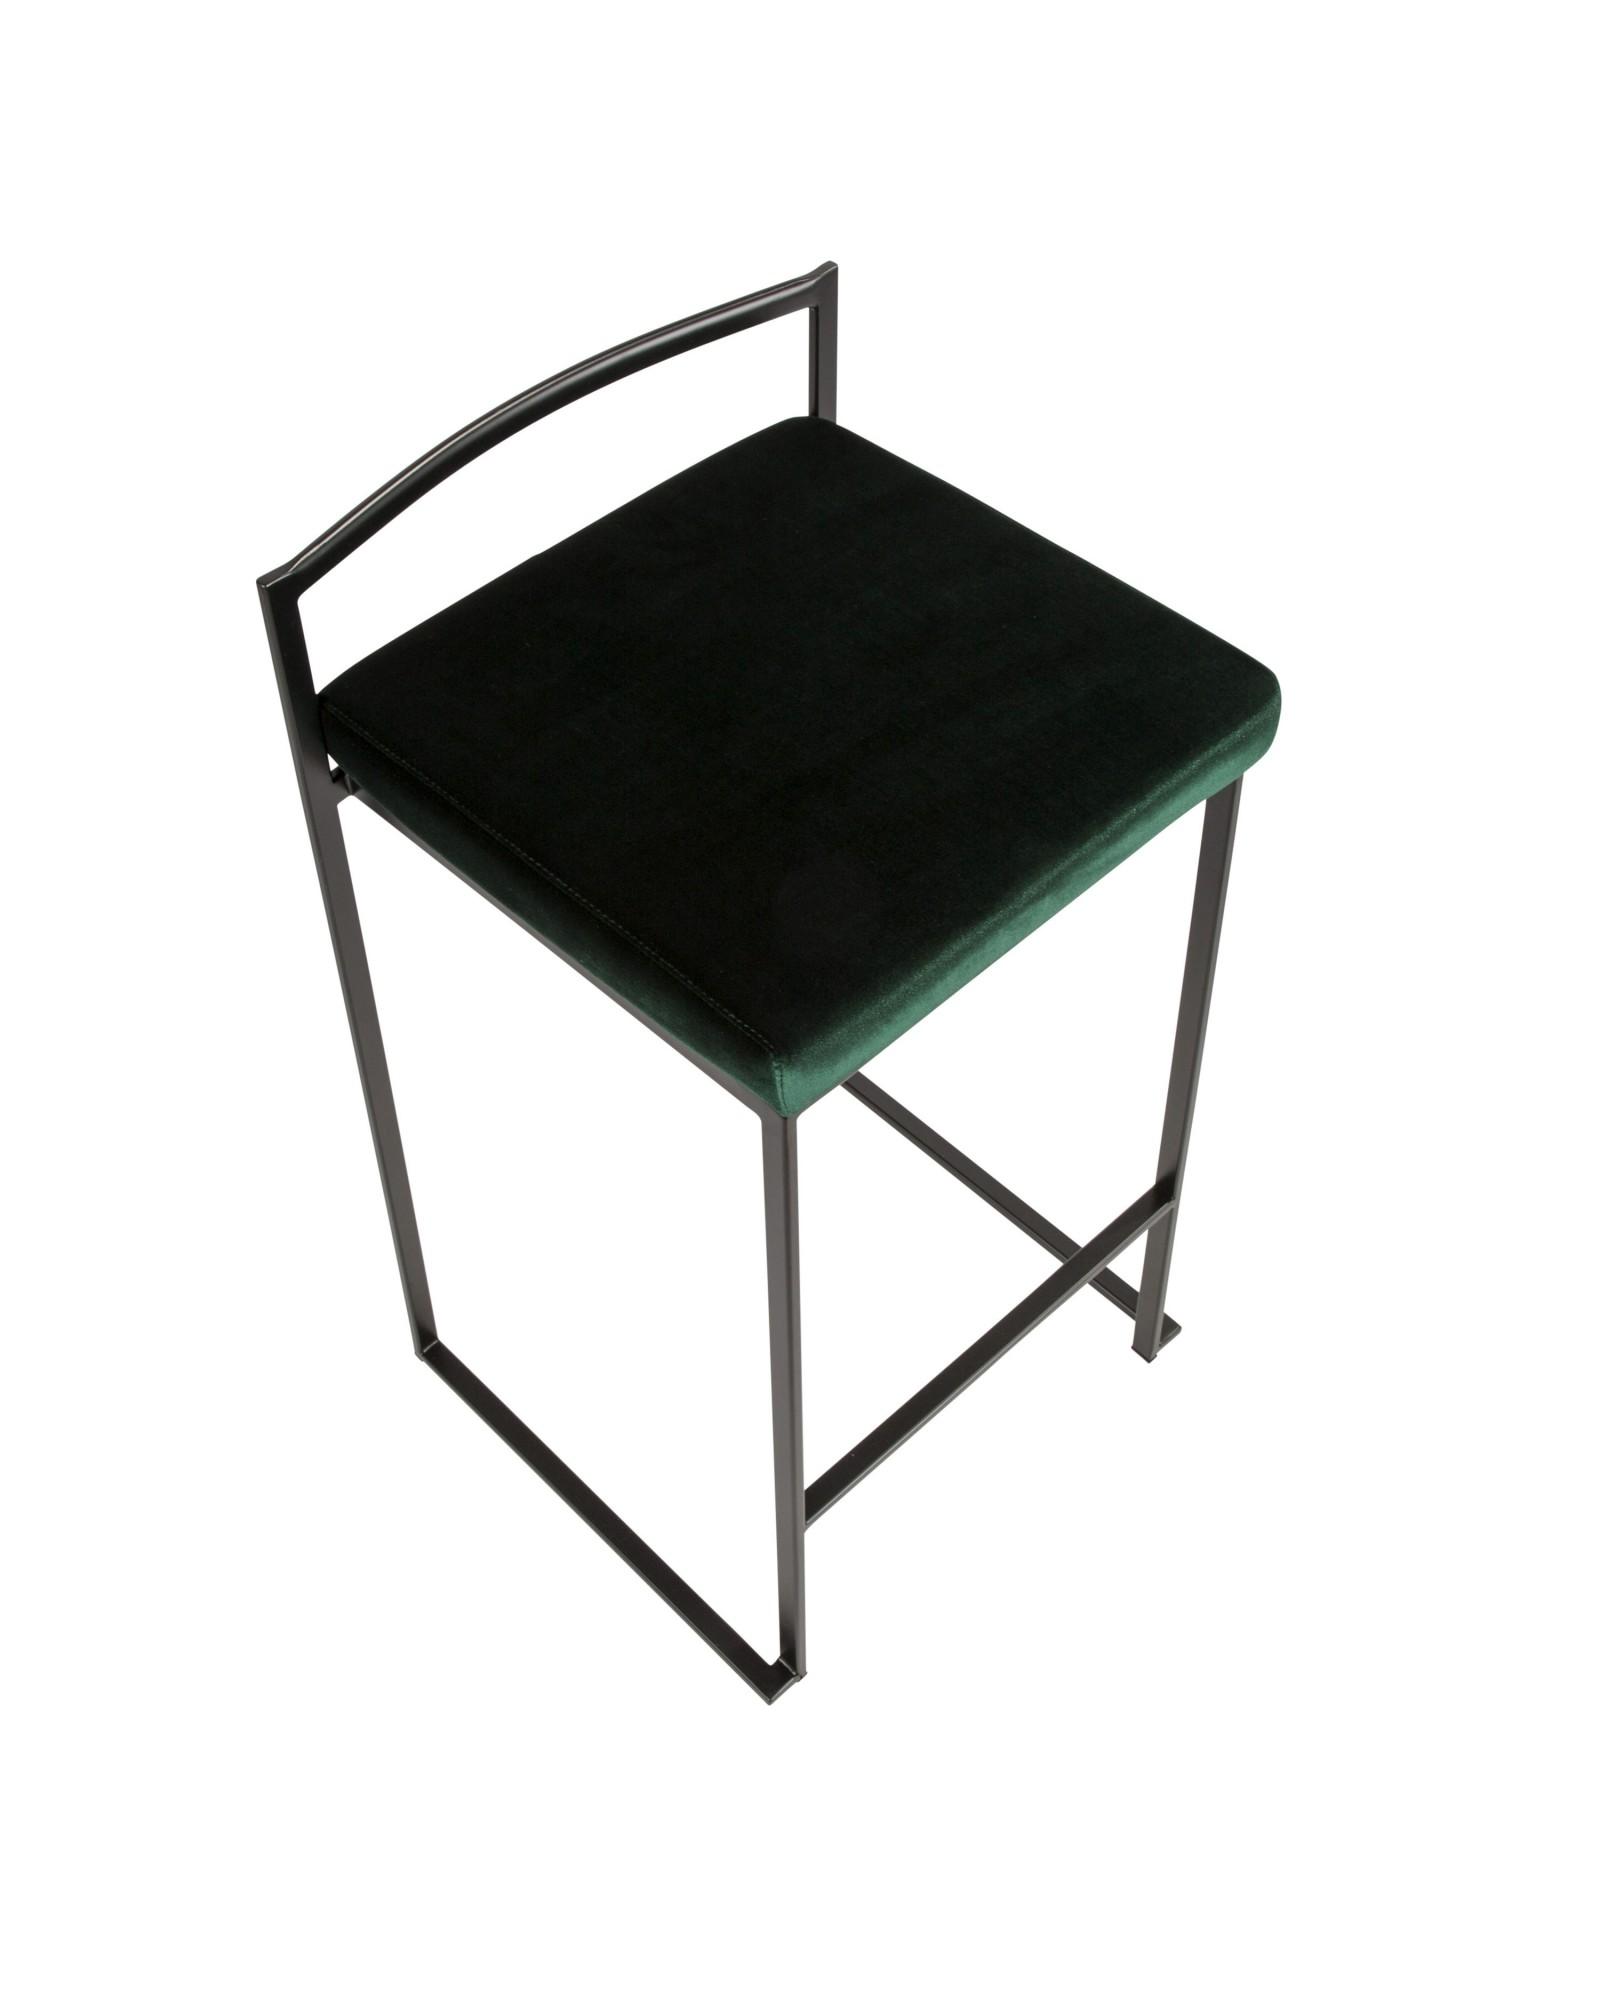 Fuji Contemporary Stackable Counter Stool in Black with Green Velvet Cushion - Set of 2